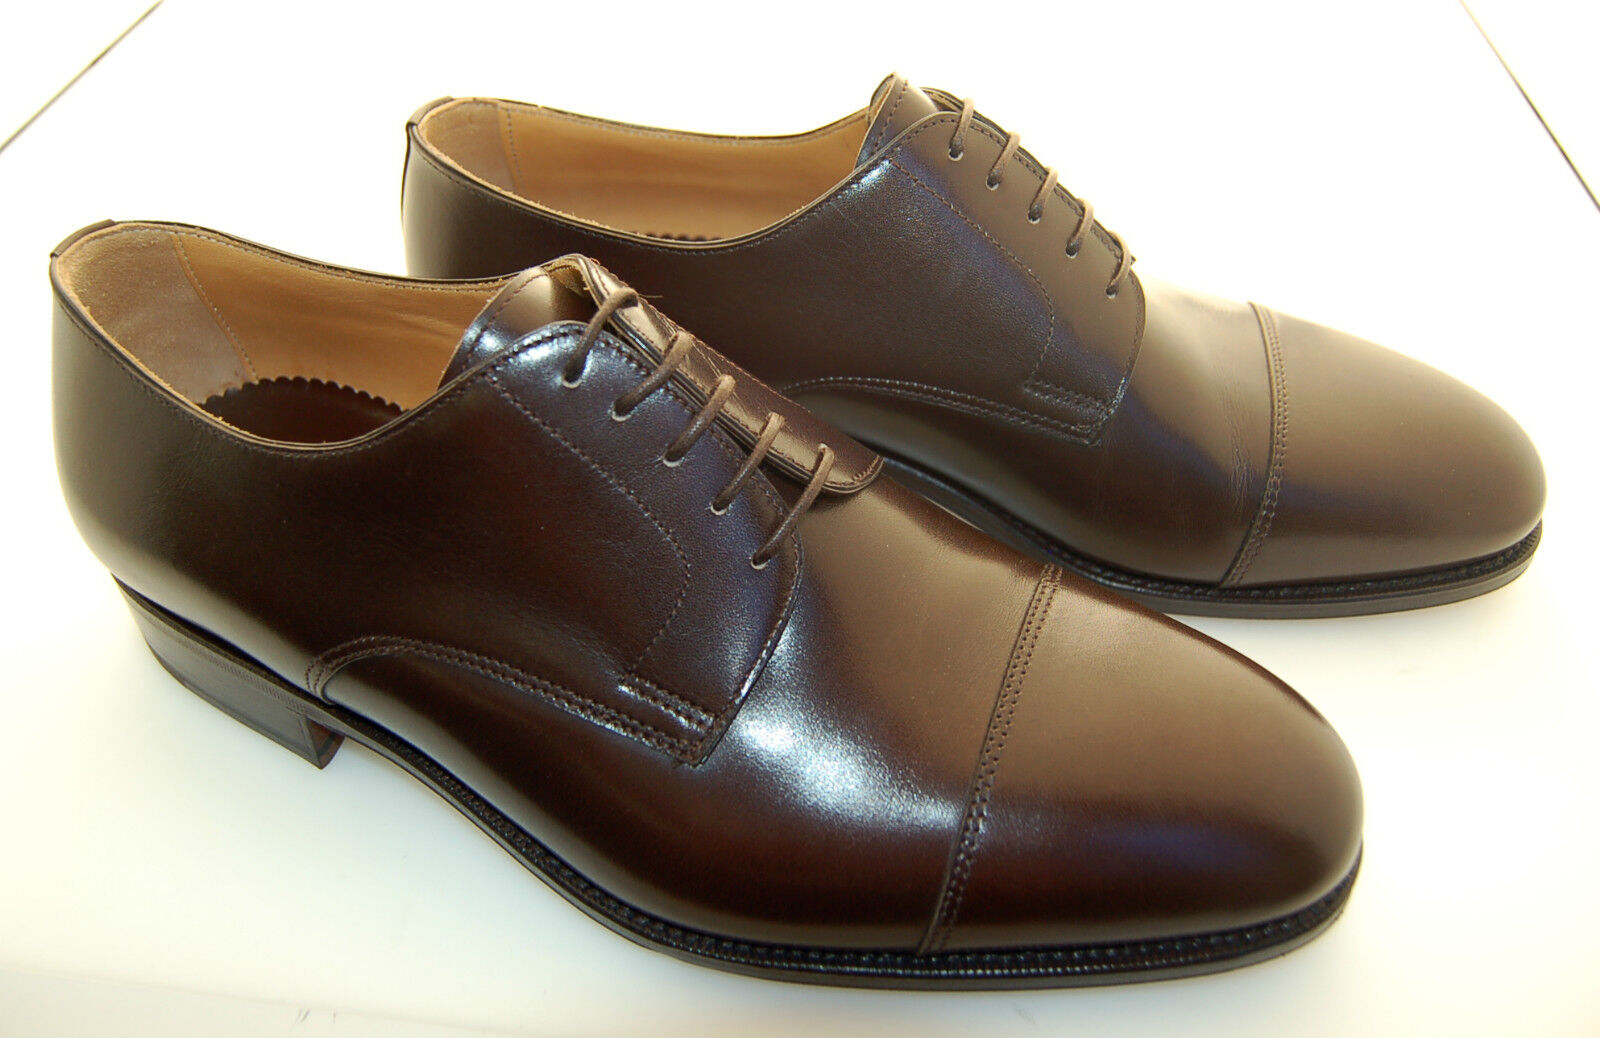 MAN DOUBLE DERBY CAPTOE - CALF 5048 - DOUBLE MAN LTH SOLE/SUOLA CUOIO+BLAKE CSTR c931d1